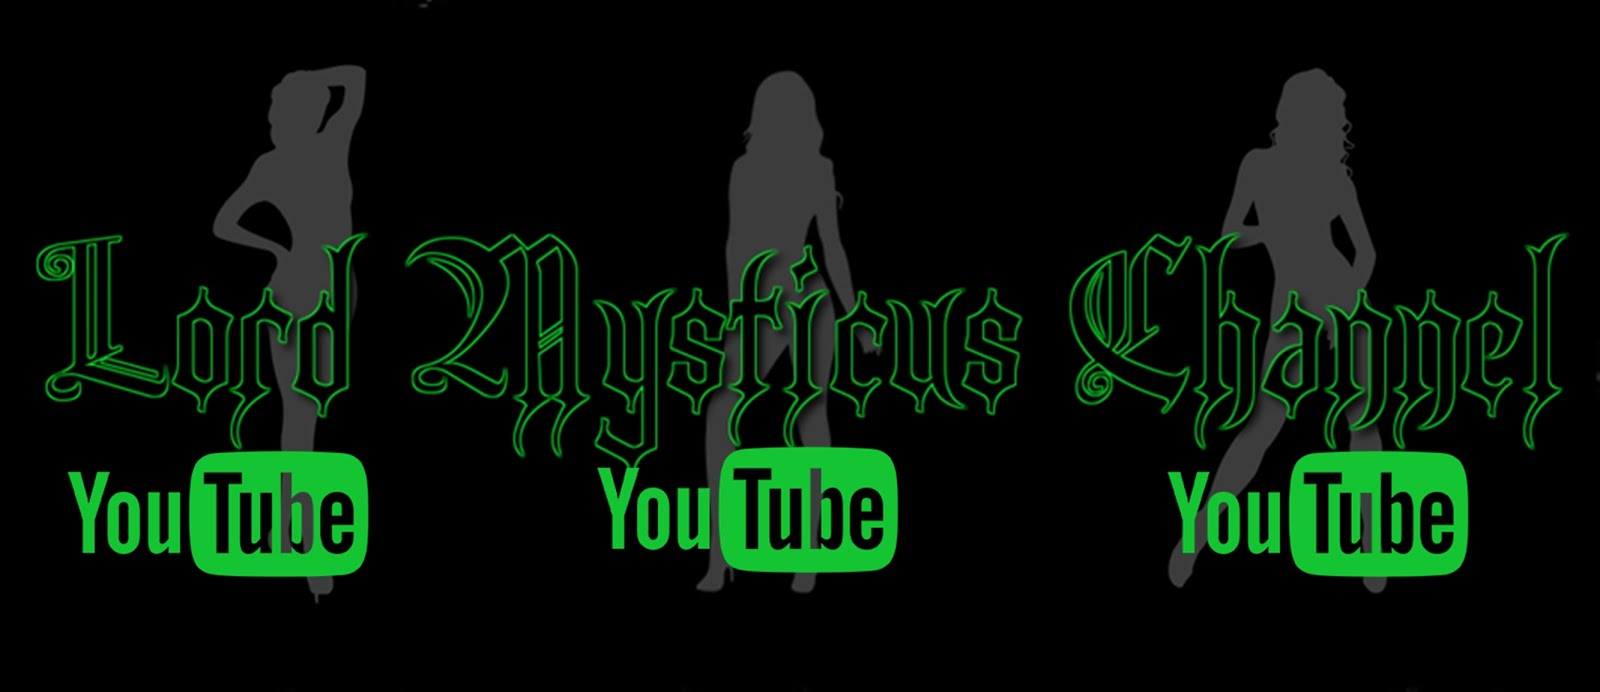 Lord Mysticus Channel